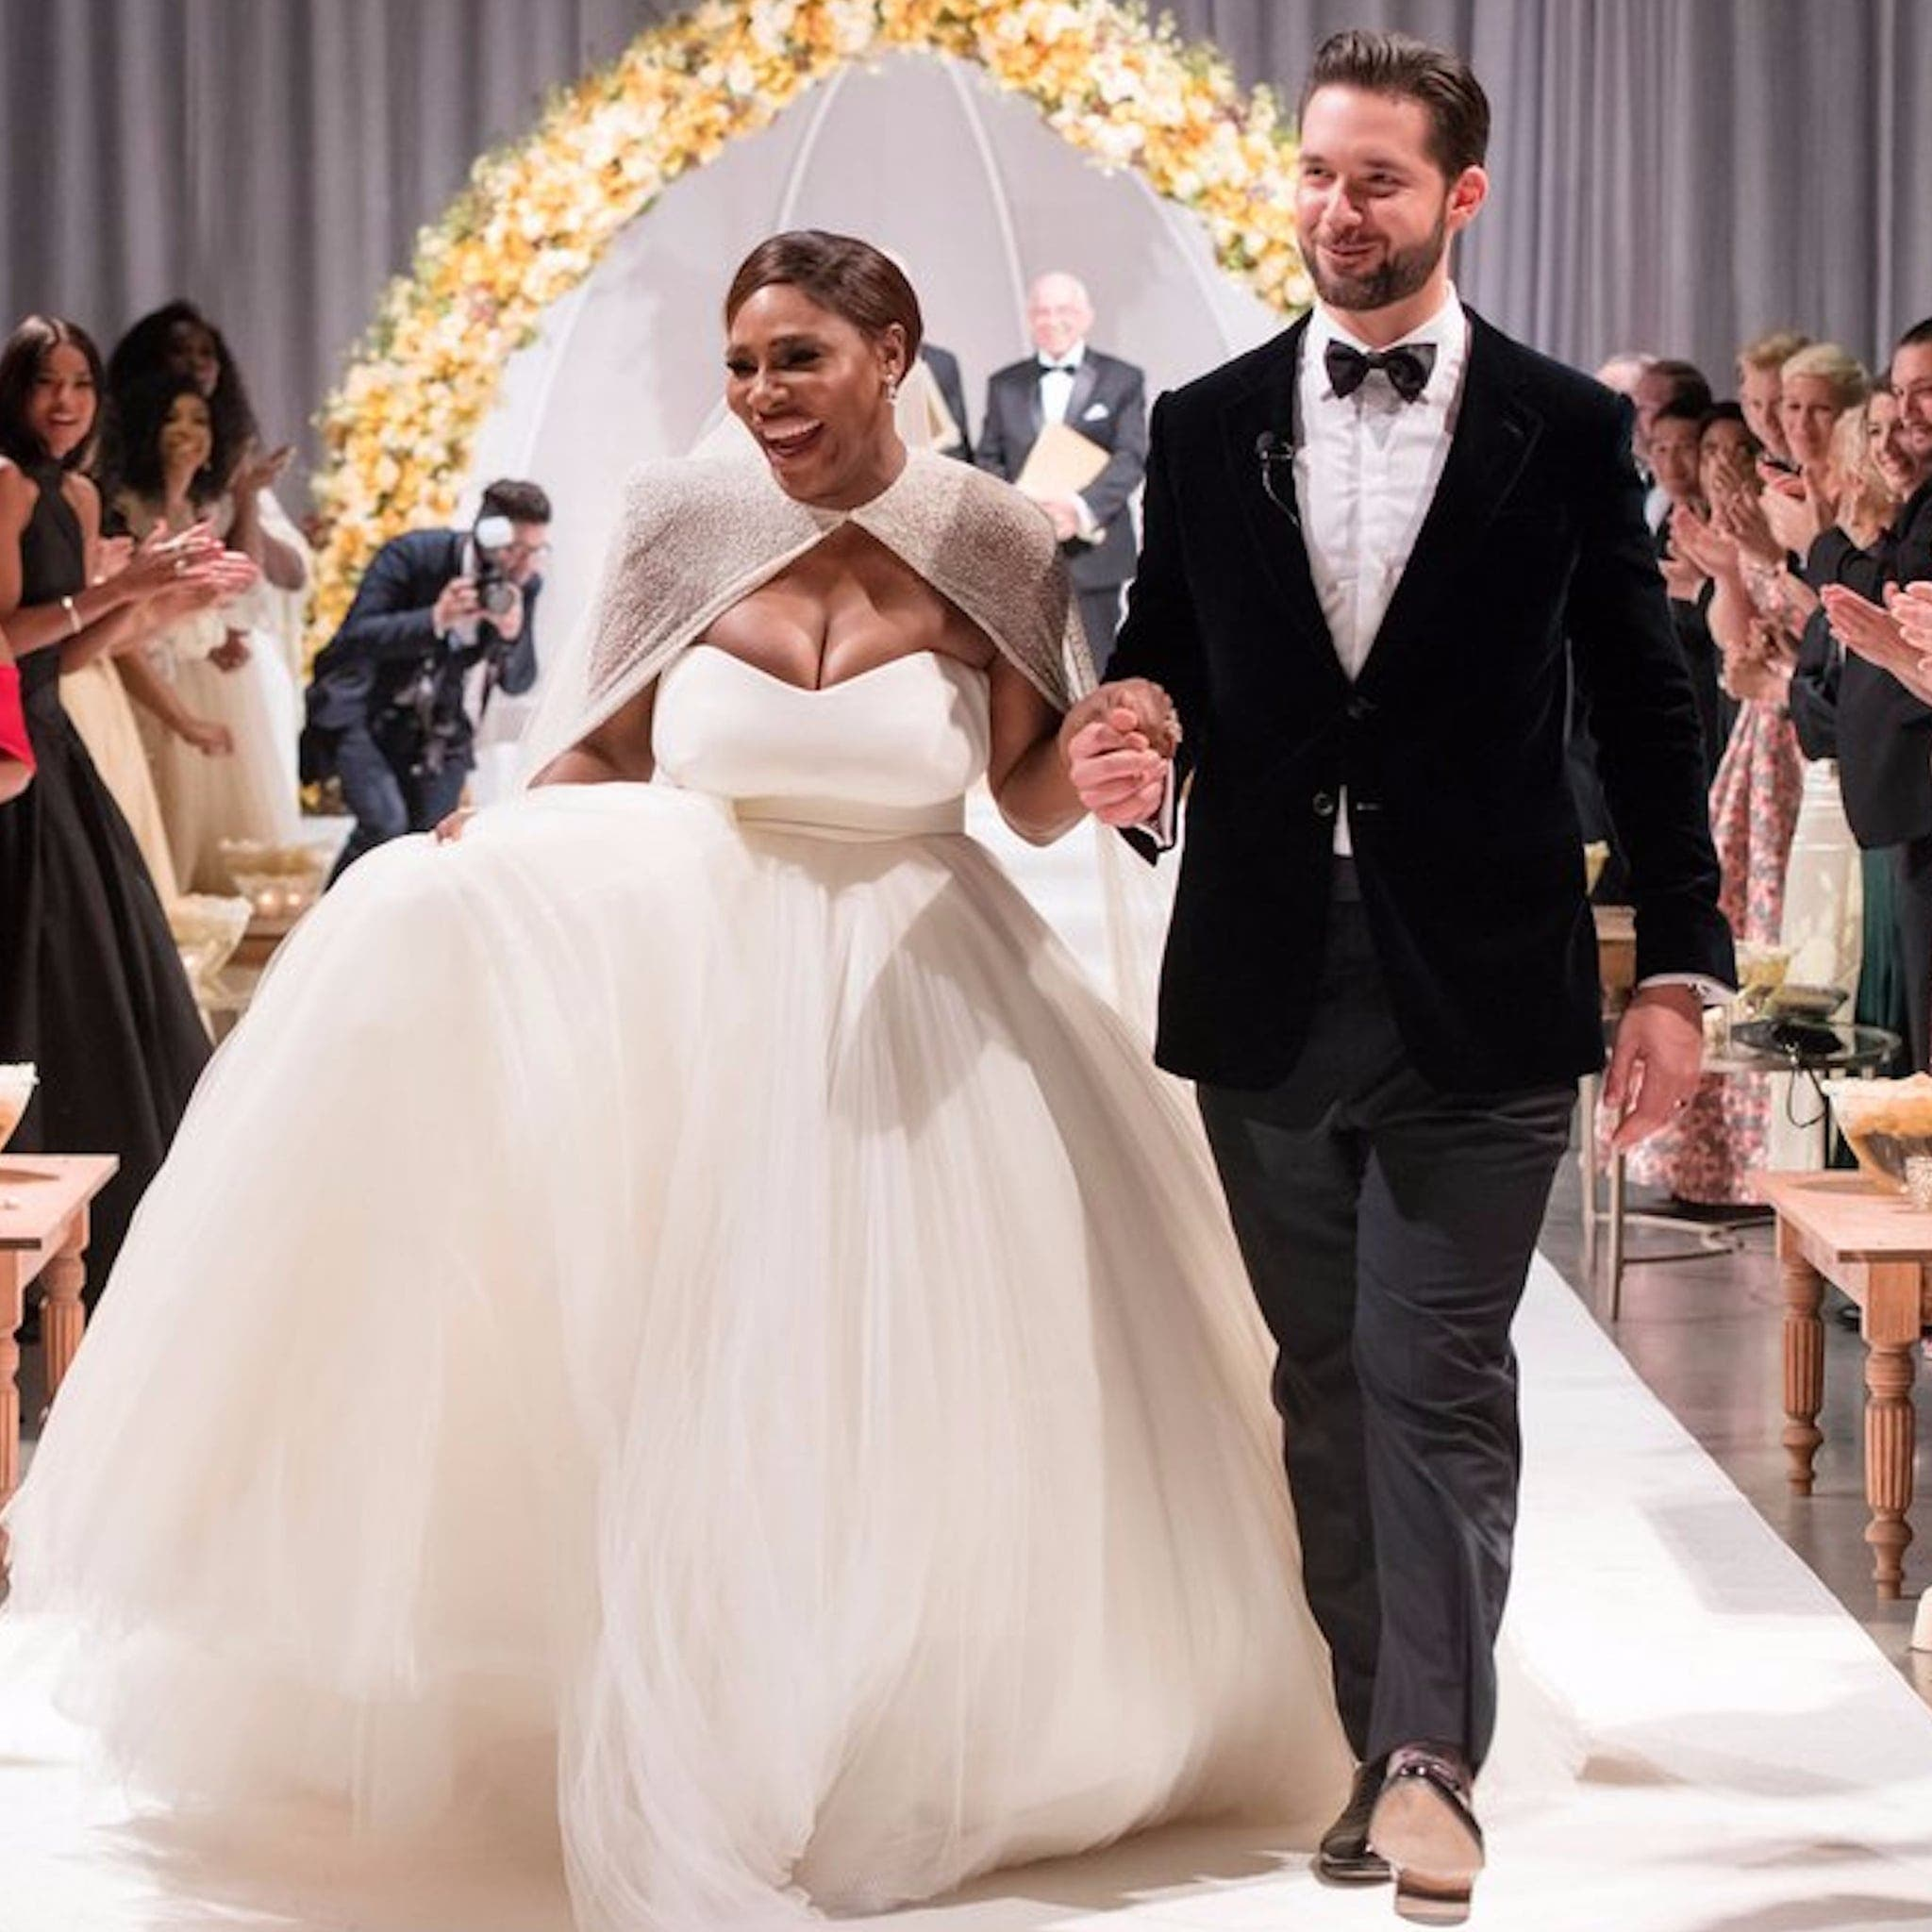 Serena Williams And Alexis Ohanian Celebrate Their Second